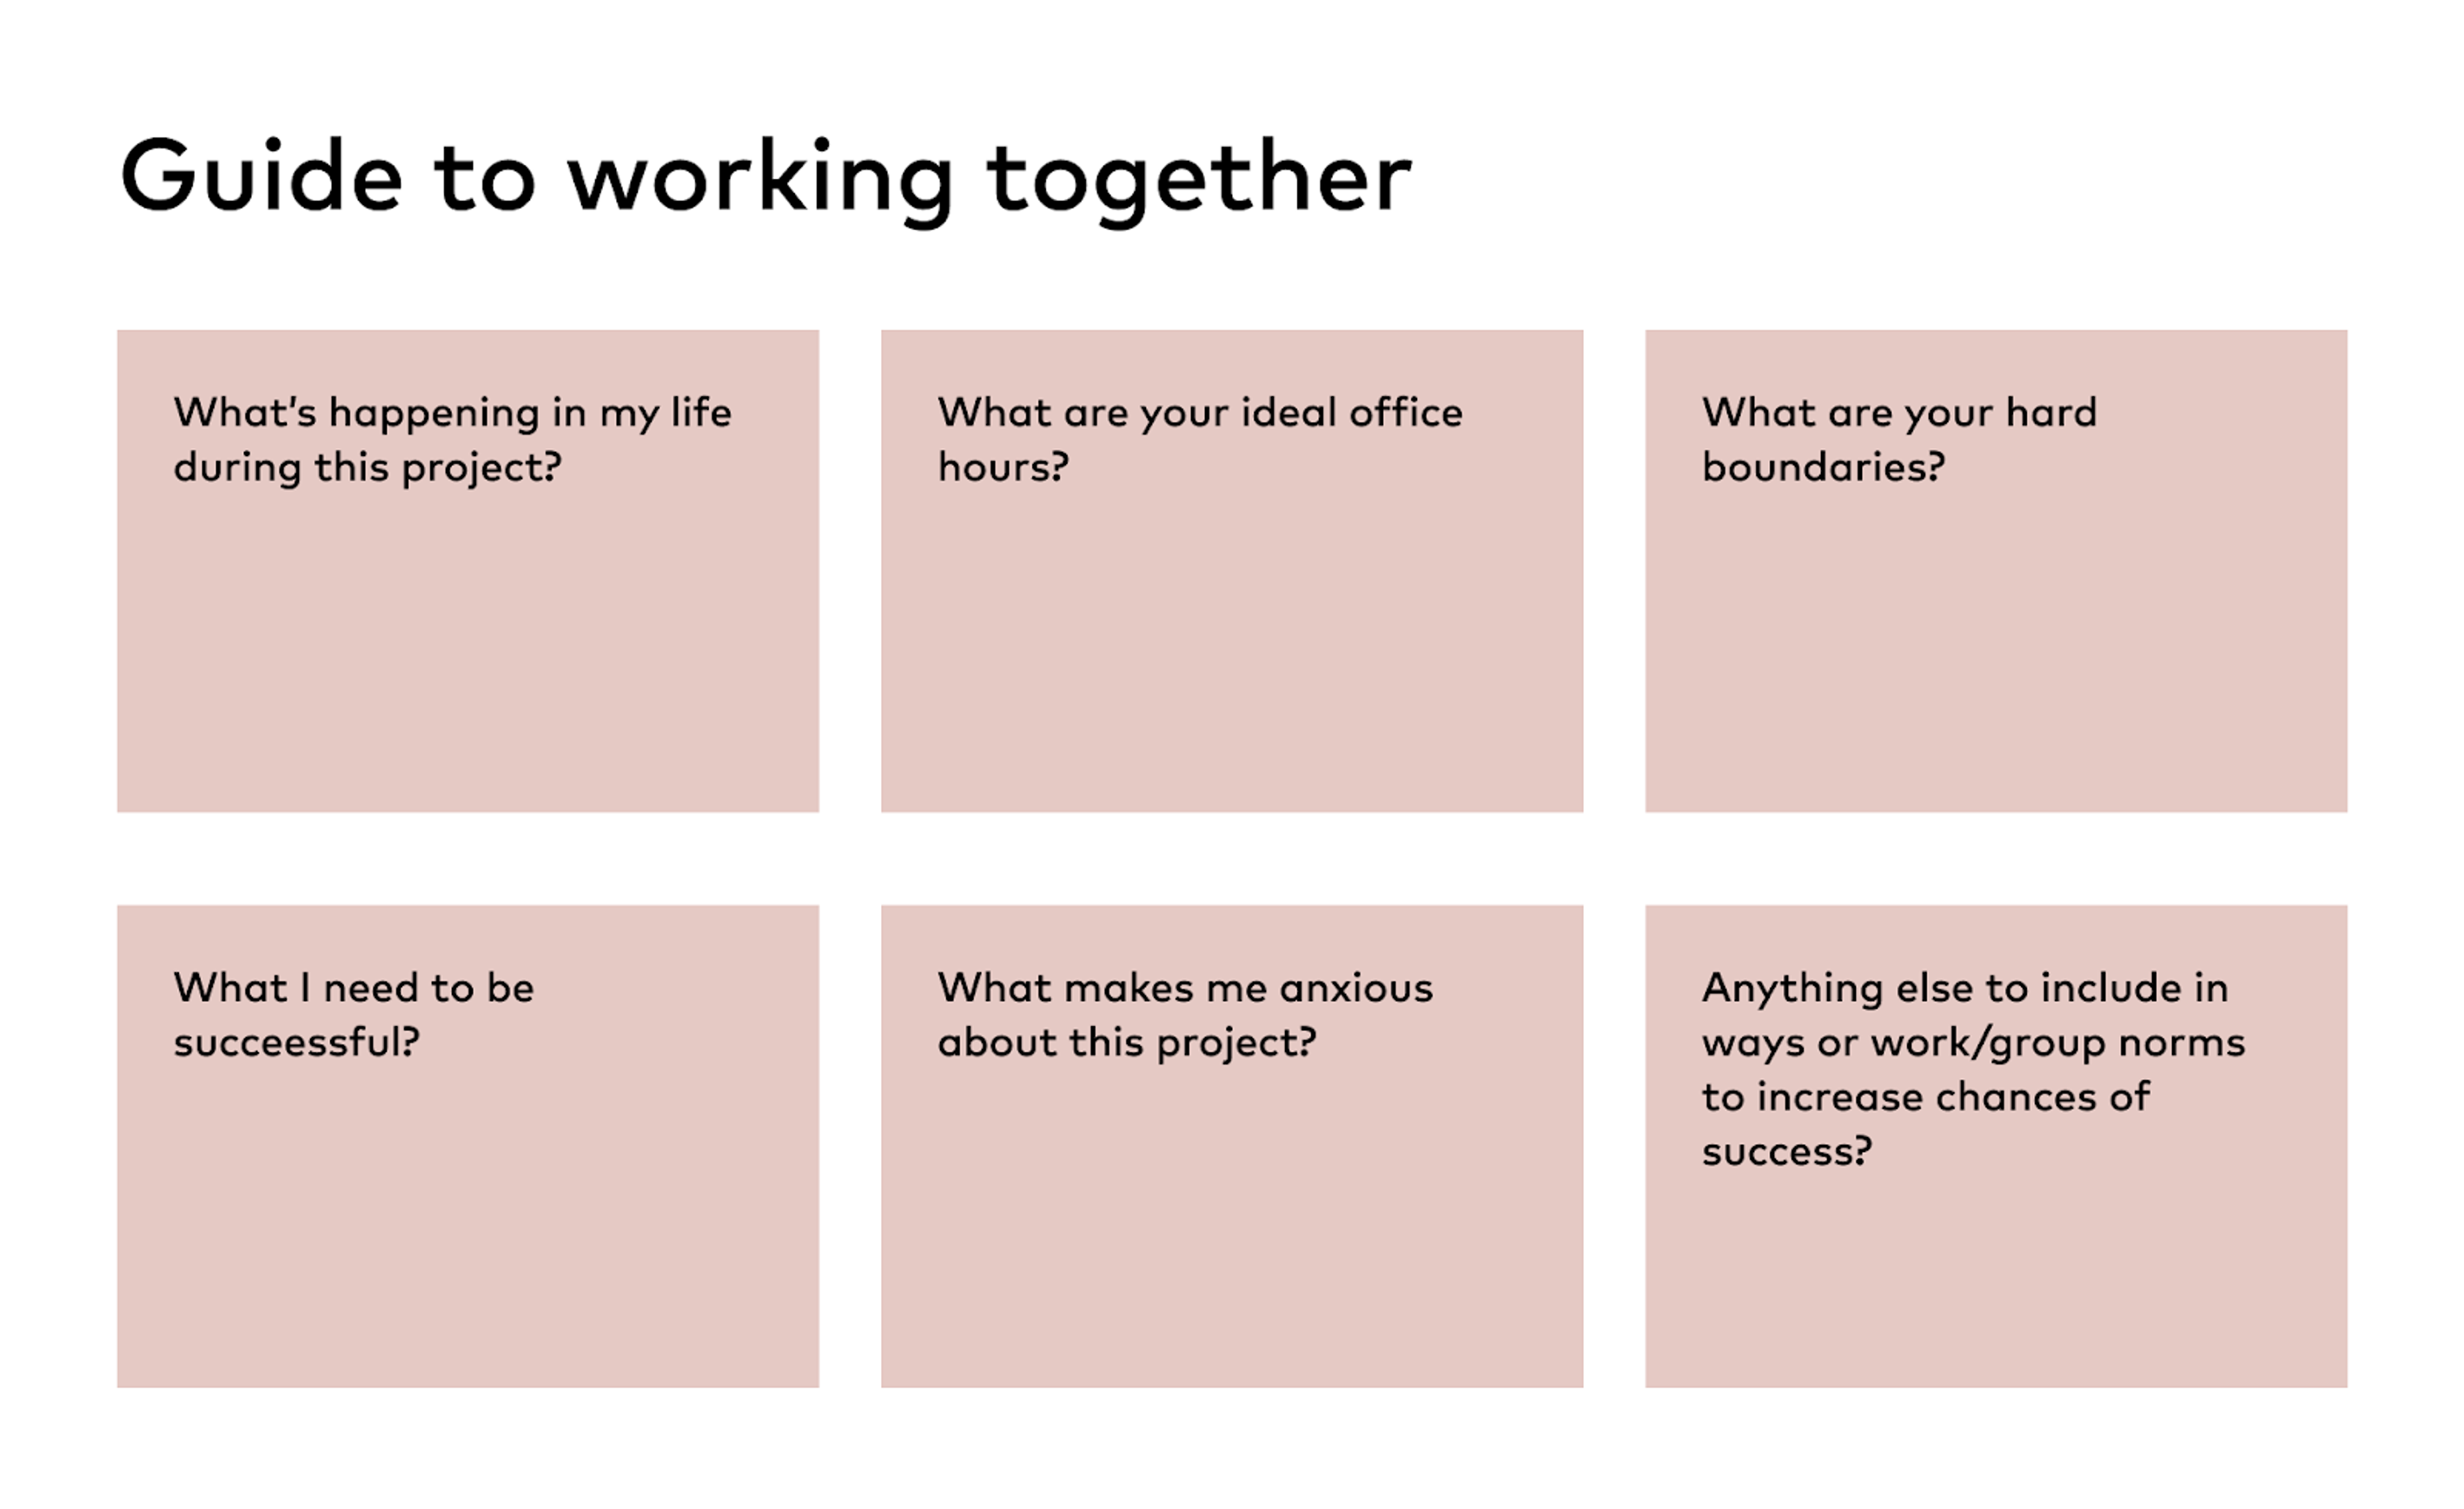 Guide boxes for working together